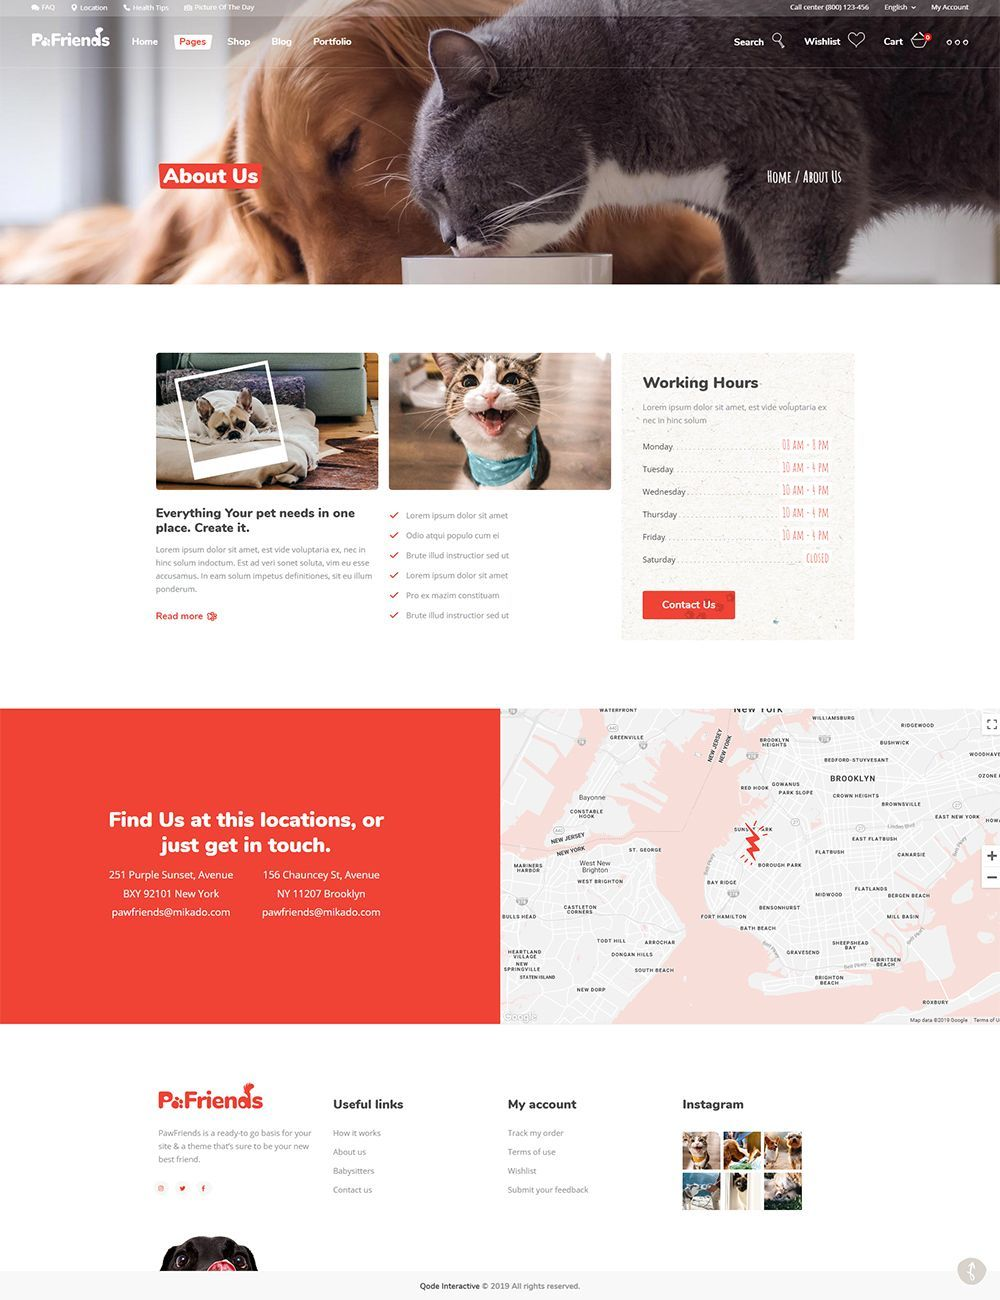 Made for pet stores and vet clinics, PawFriends WordPress theme combines super cute design with amazing features for a true website treat. #wordpress #theme #design #webdesign #uxdesign #uidesign #responsive #designinspiration #webdesign #wordpresslove #template #layout #websitedesign #branding #websiteideas #webart #webpage #visual